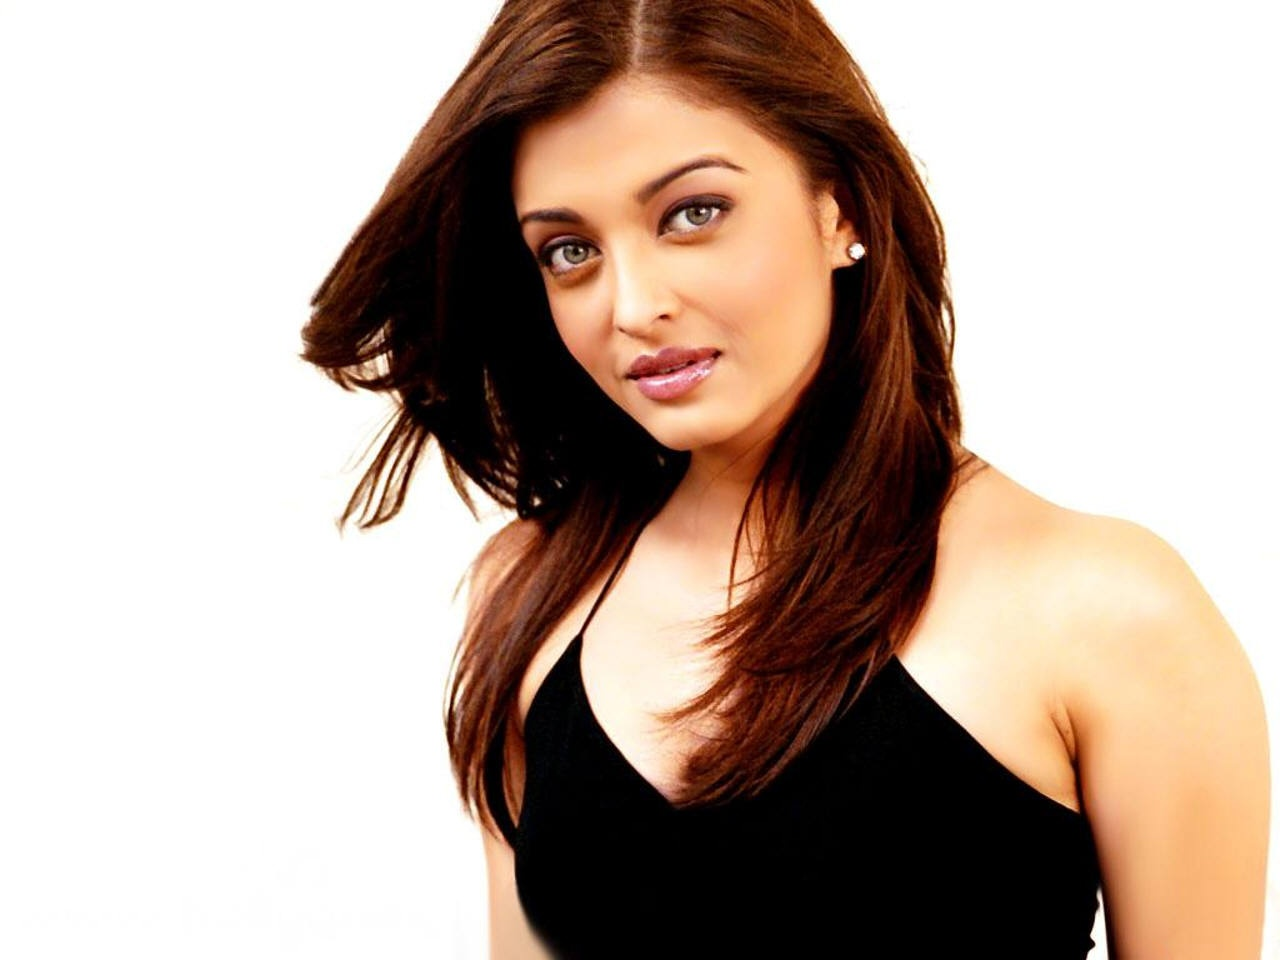 Aishwarya Rai Latest Romance Hairstyles, Long Hairstyle 2013, Hairstyle 2013, New Long Hairstyle 2013, Celebrity Long Romance Hairstyles 2165